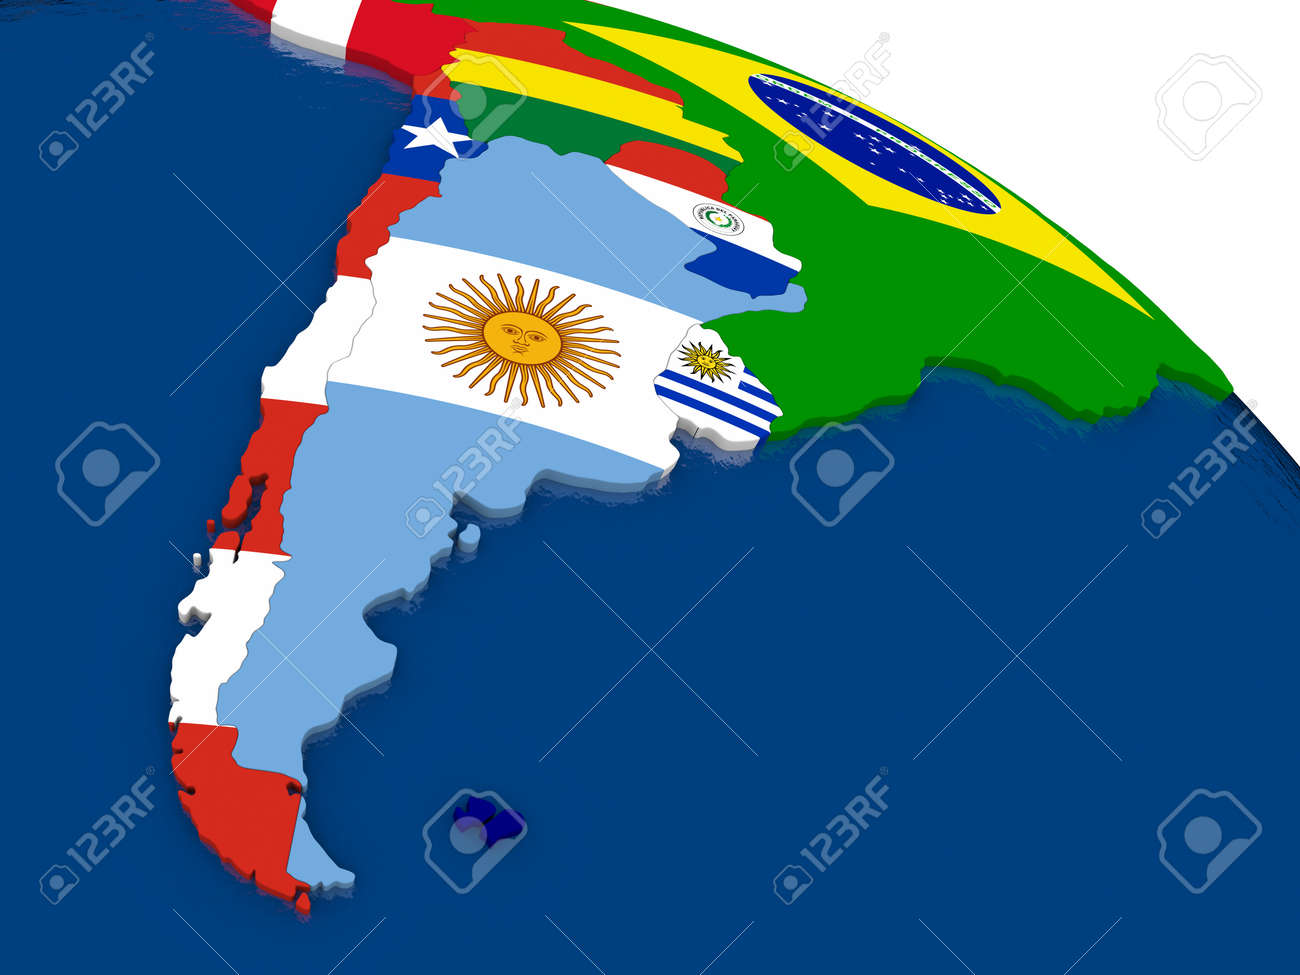 Map Of Argentina And Chile With Embedded Flags On 3d Political